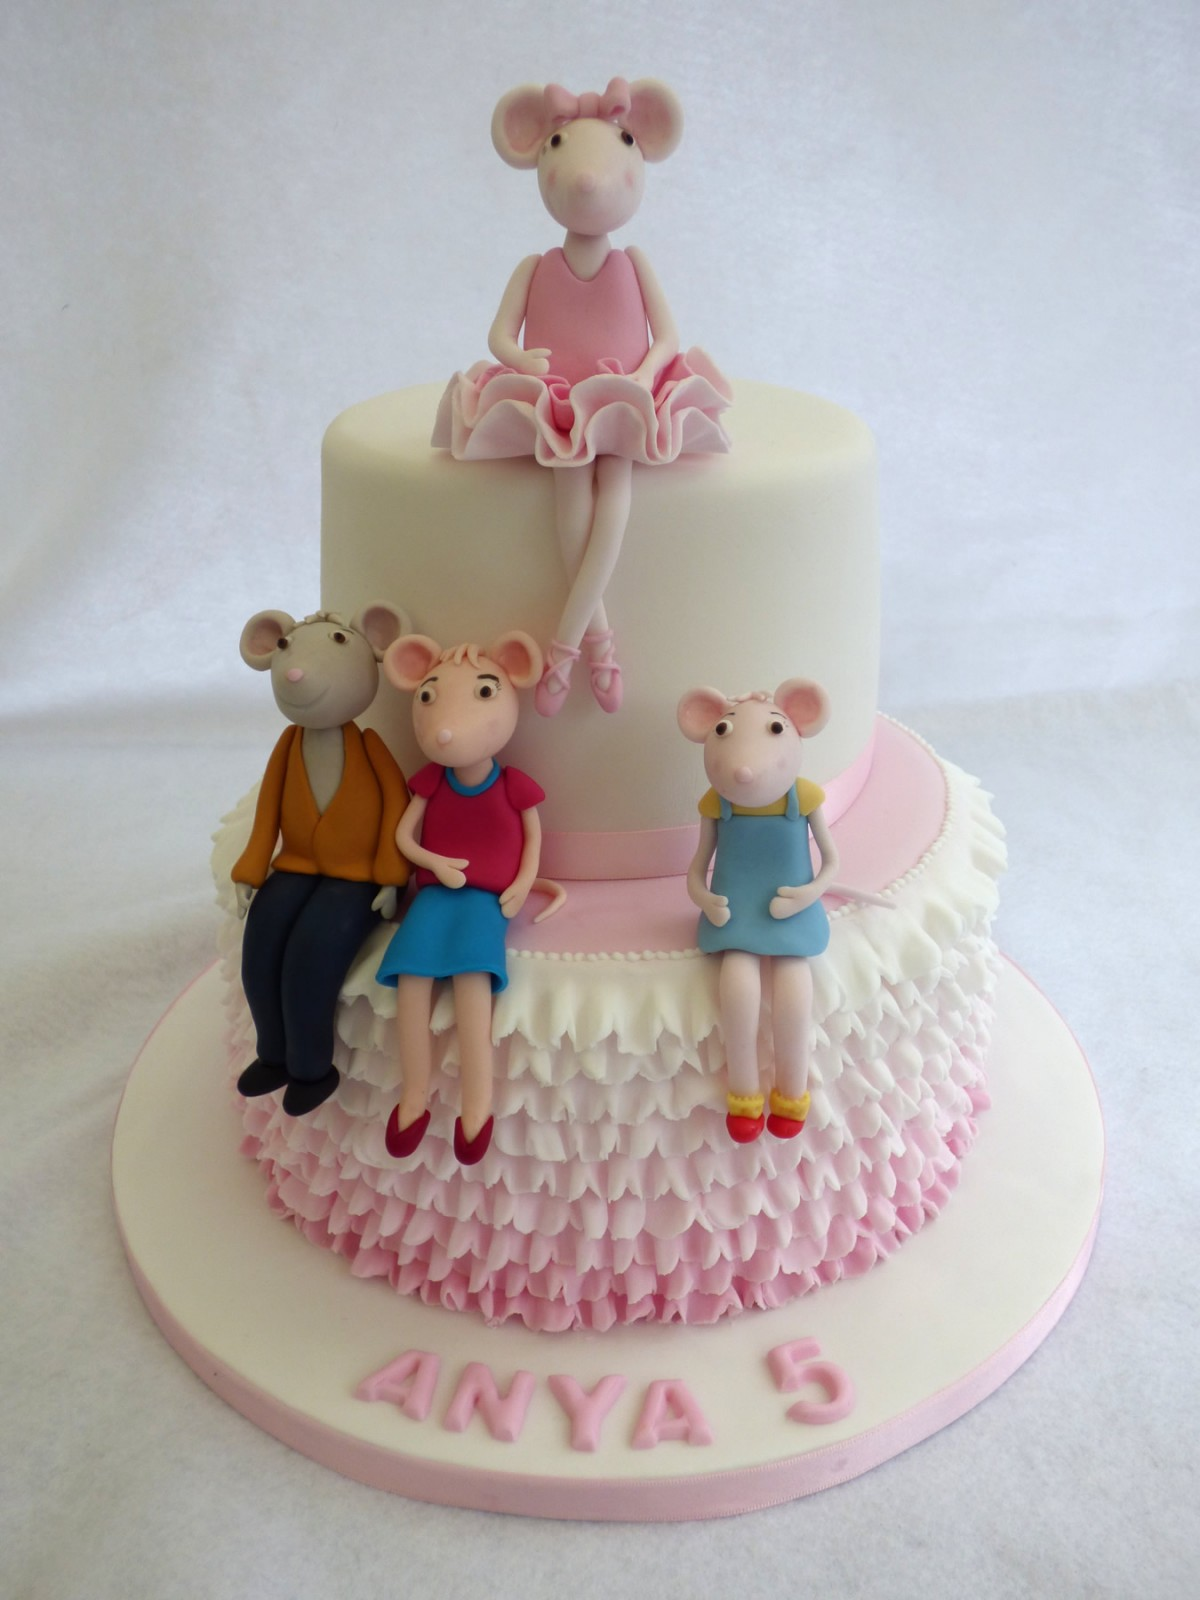 Pleasing 2 Tier Angelina Ballerina Birthday Cake Susies Cakes Personalised Birthday Cards Paralily Jamesorg